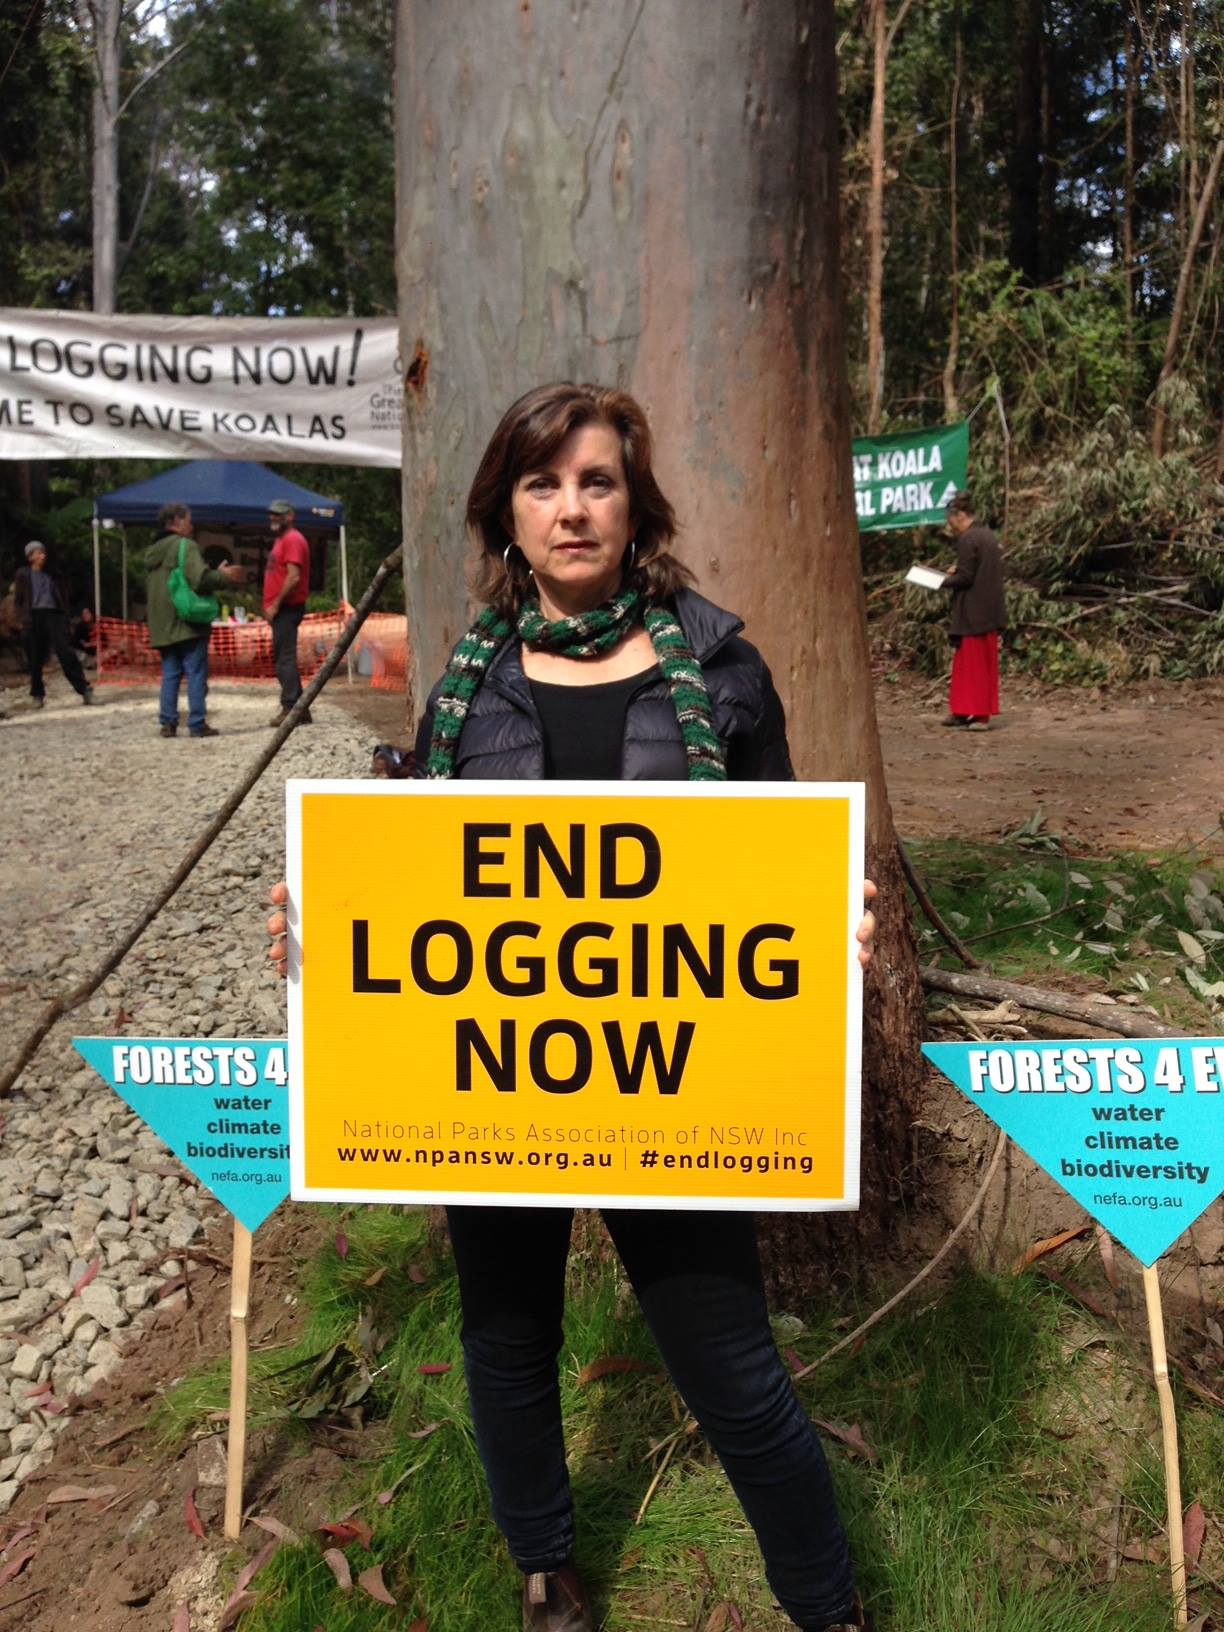 Greens slam Forestry Corporation's decision to dismantle forest blockade - Dawn Walker MP